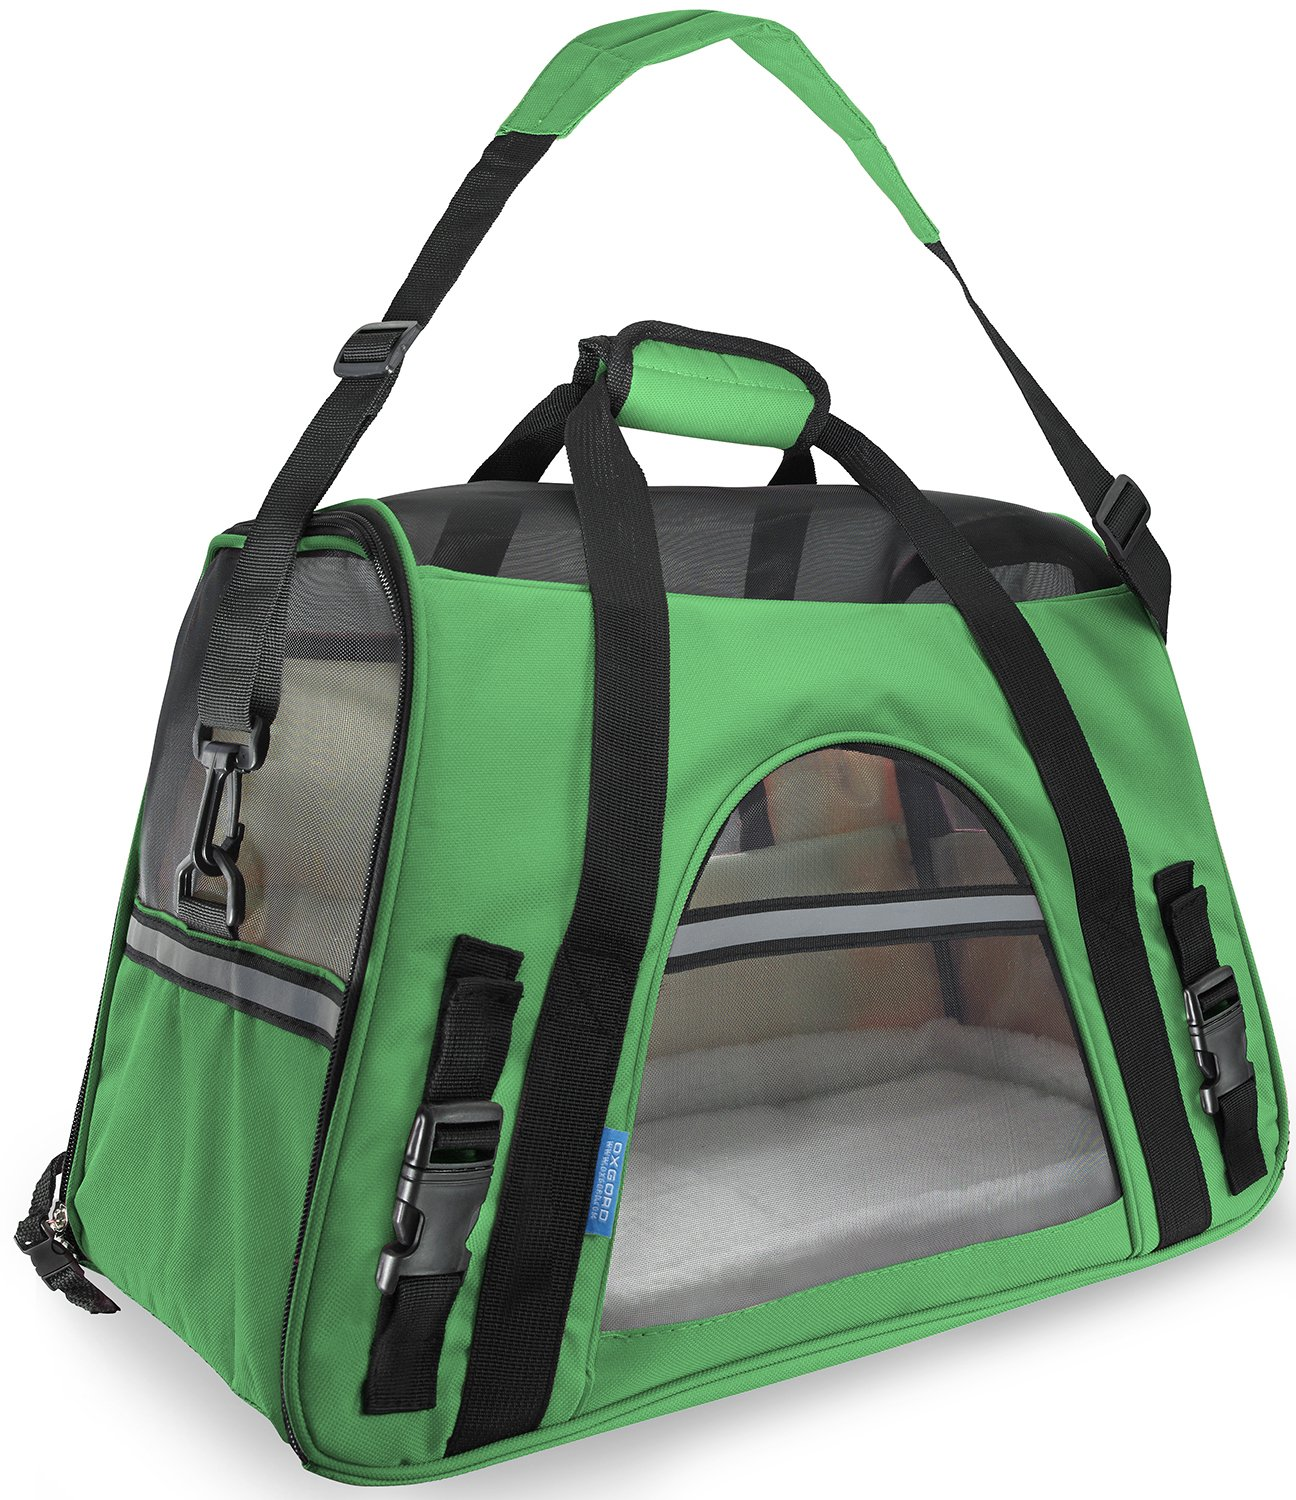 OxGord Pet Carrier Soft Sided Cat / Dog Comfort ''FAA Airline Approved'' Travel Tote Bag - 2015 Newly Designed, Small, Shamrock Green